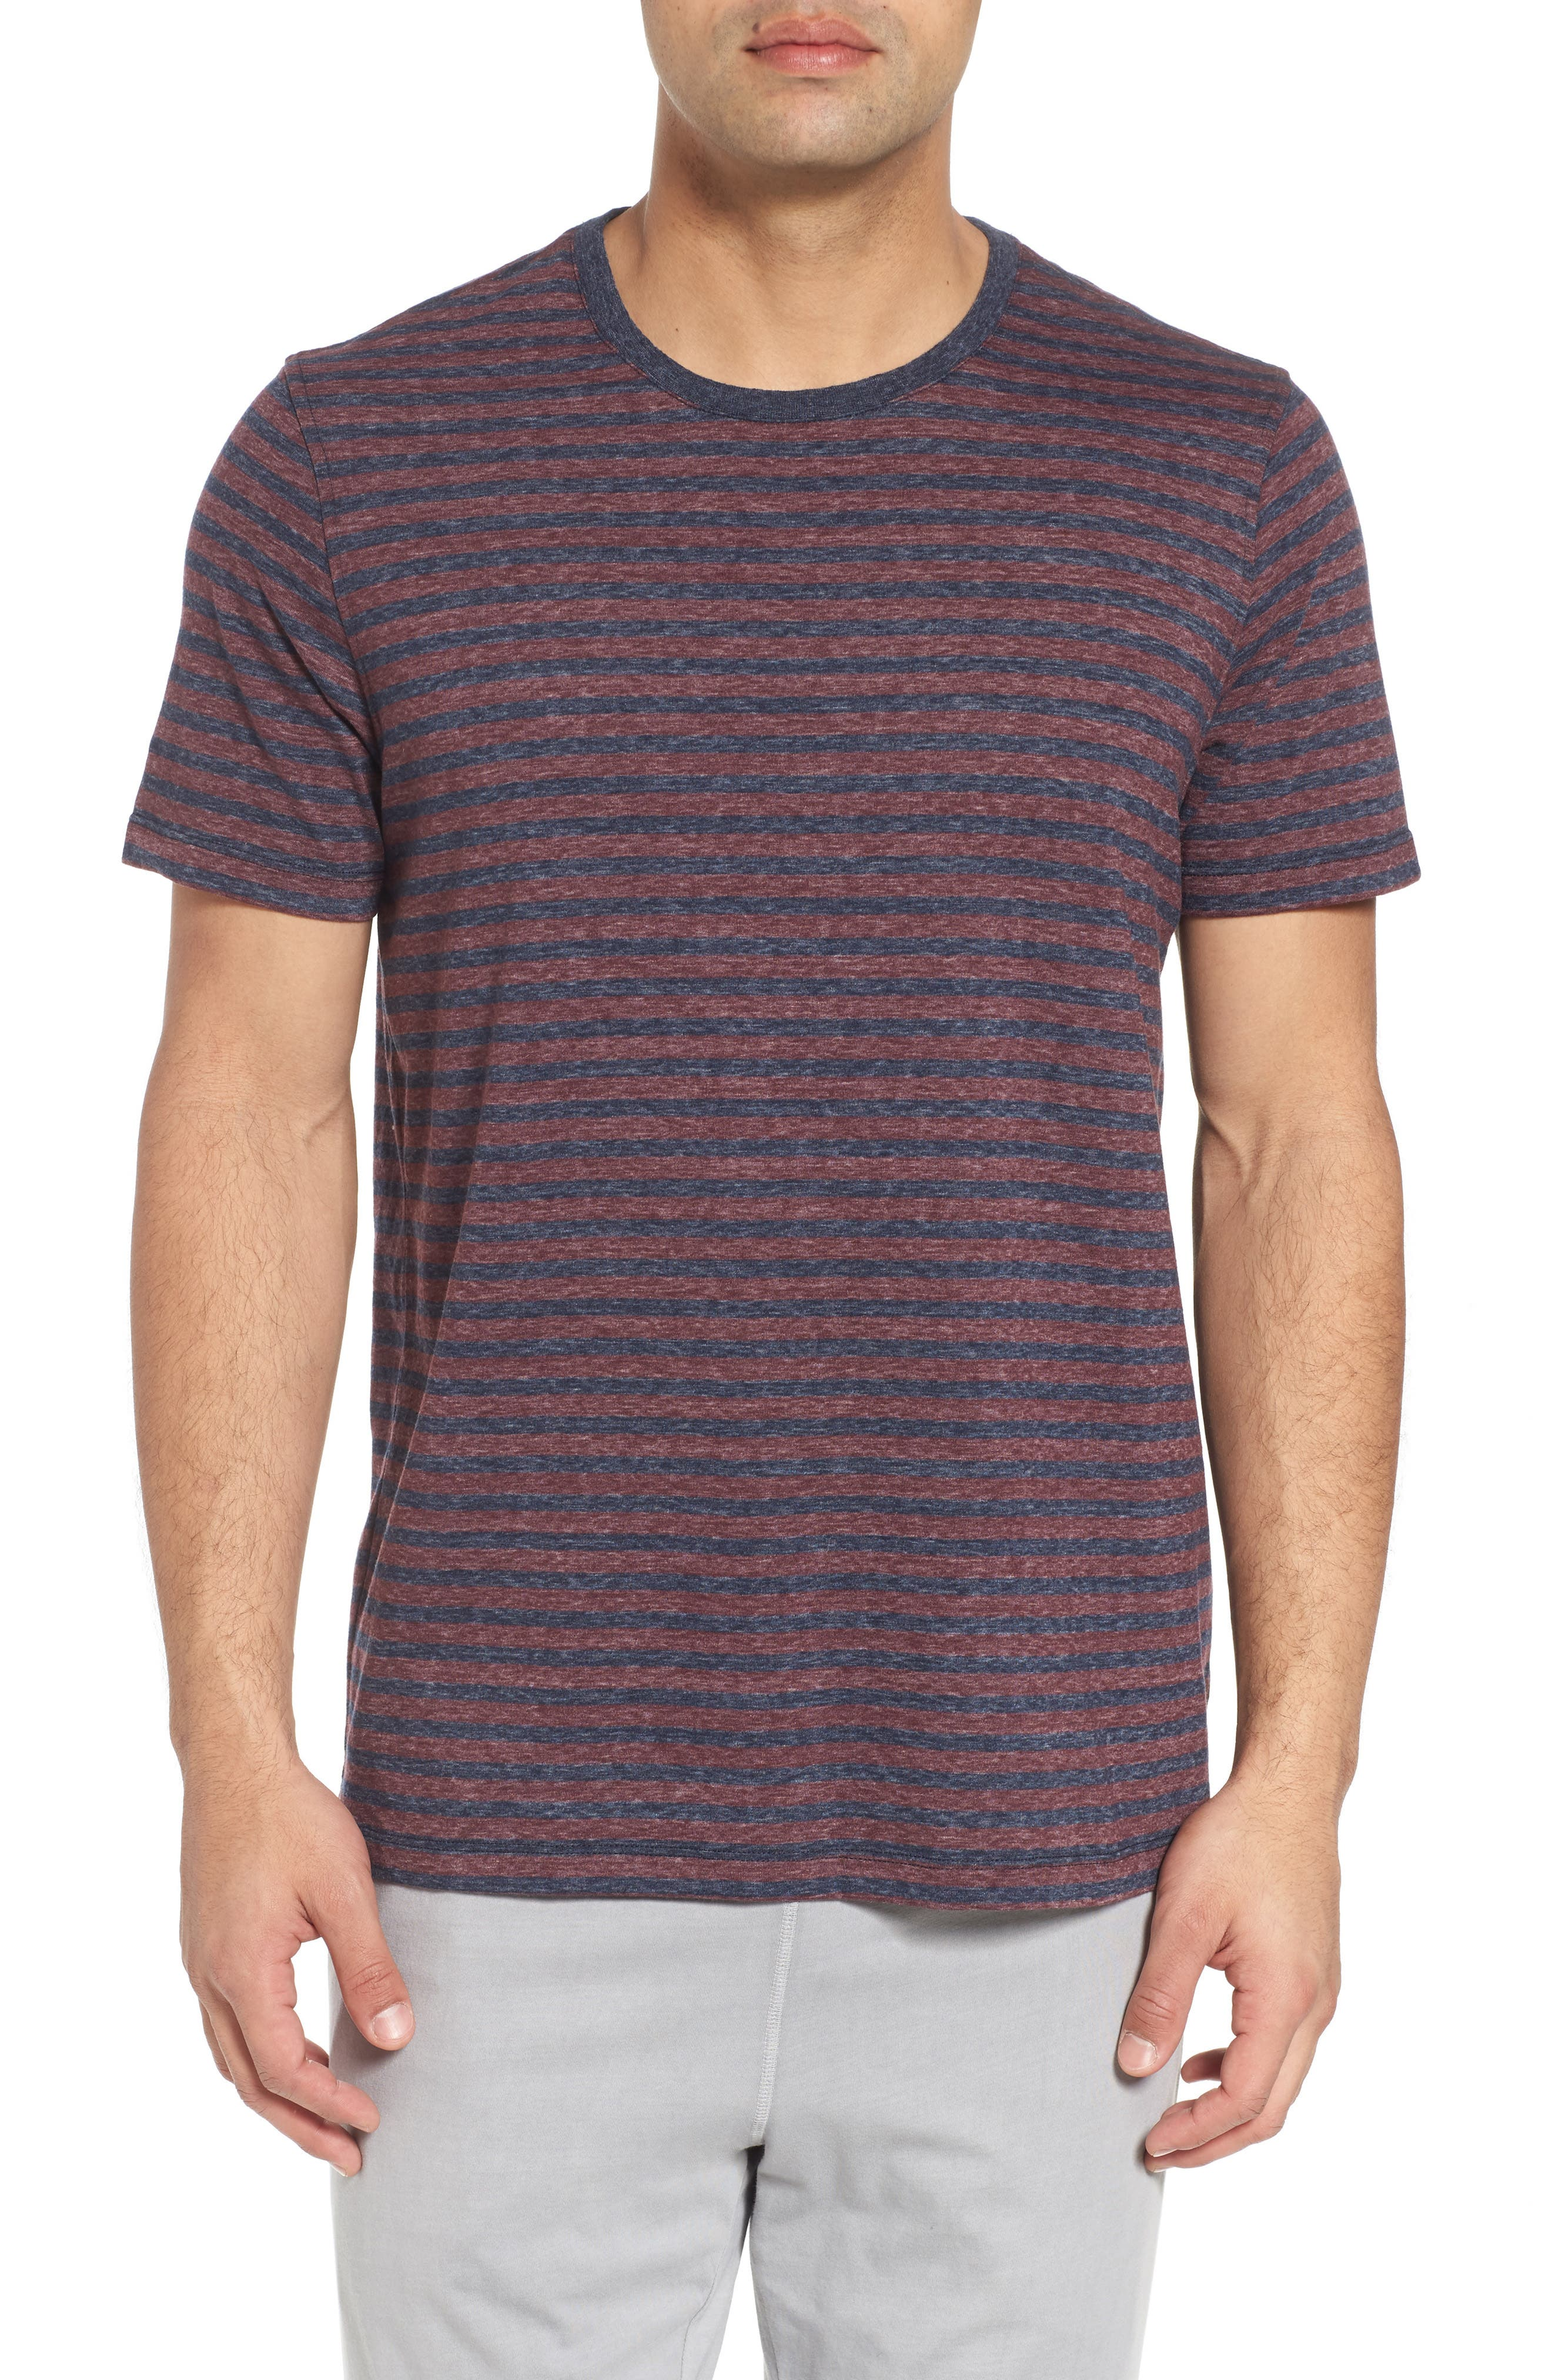 Crewneck Recycled Cotton Blend T-Shirt,                             Main thumbnail 1, color,                             Blue/ Red